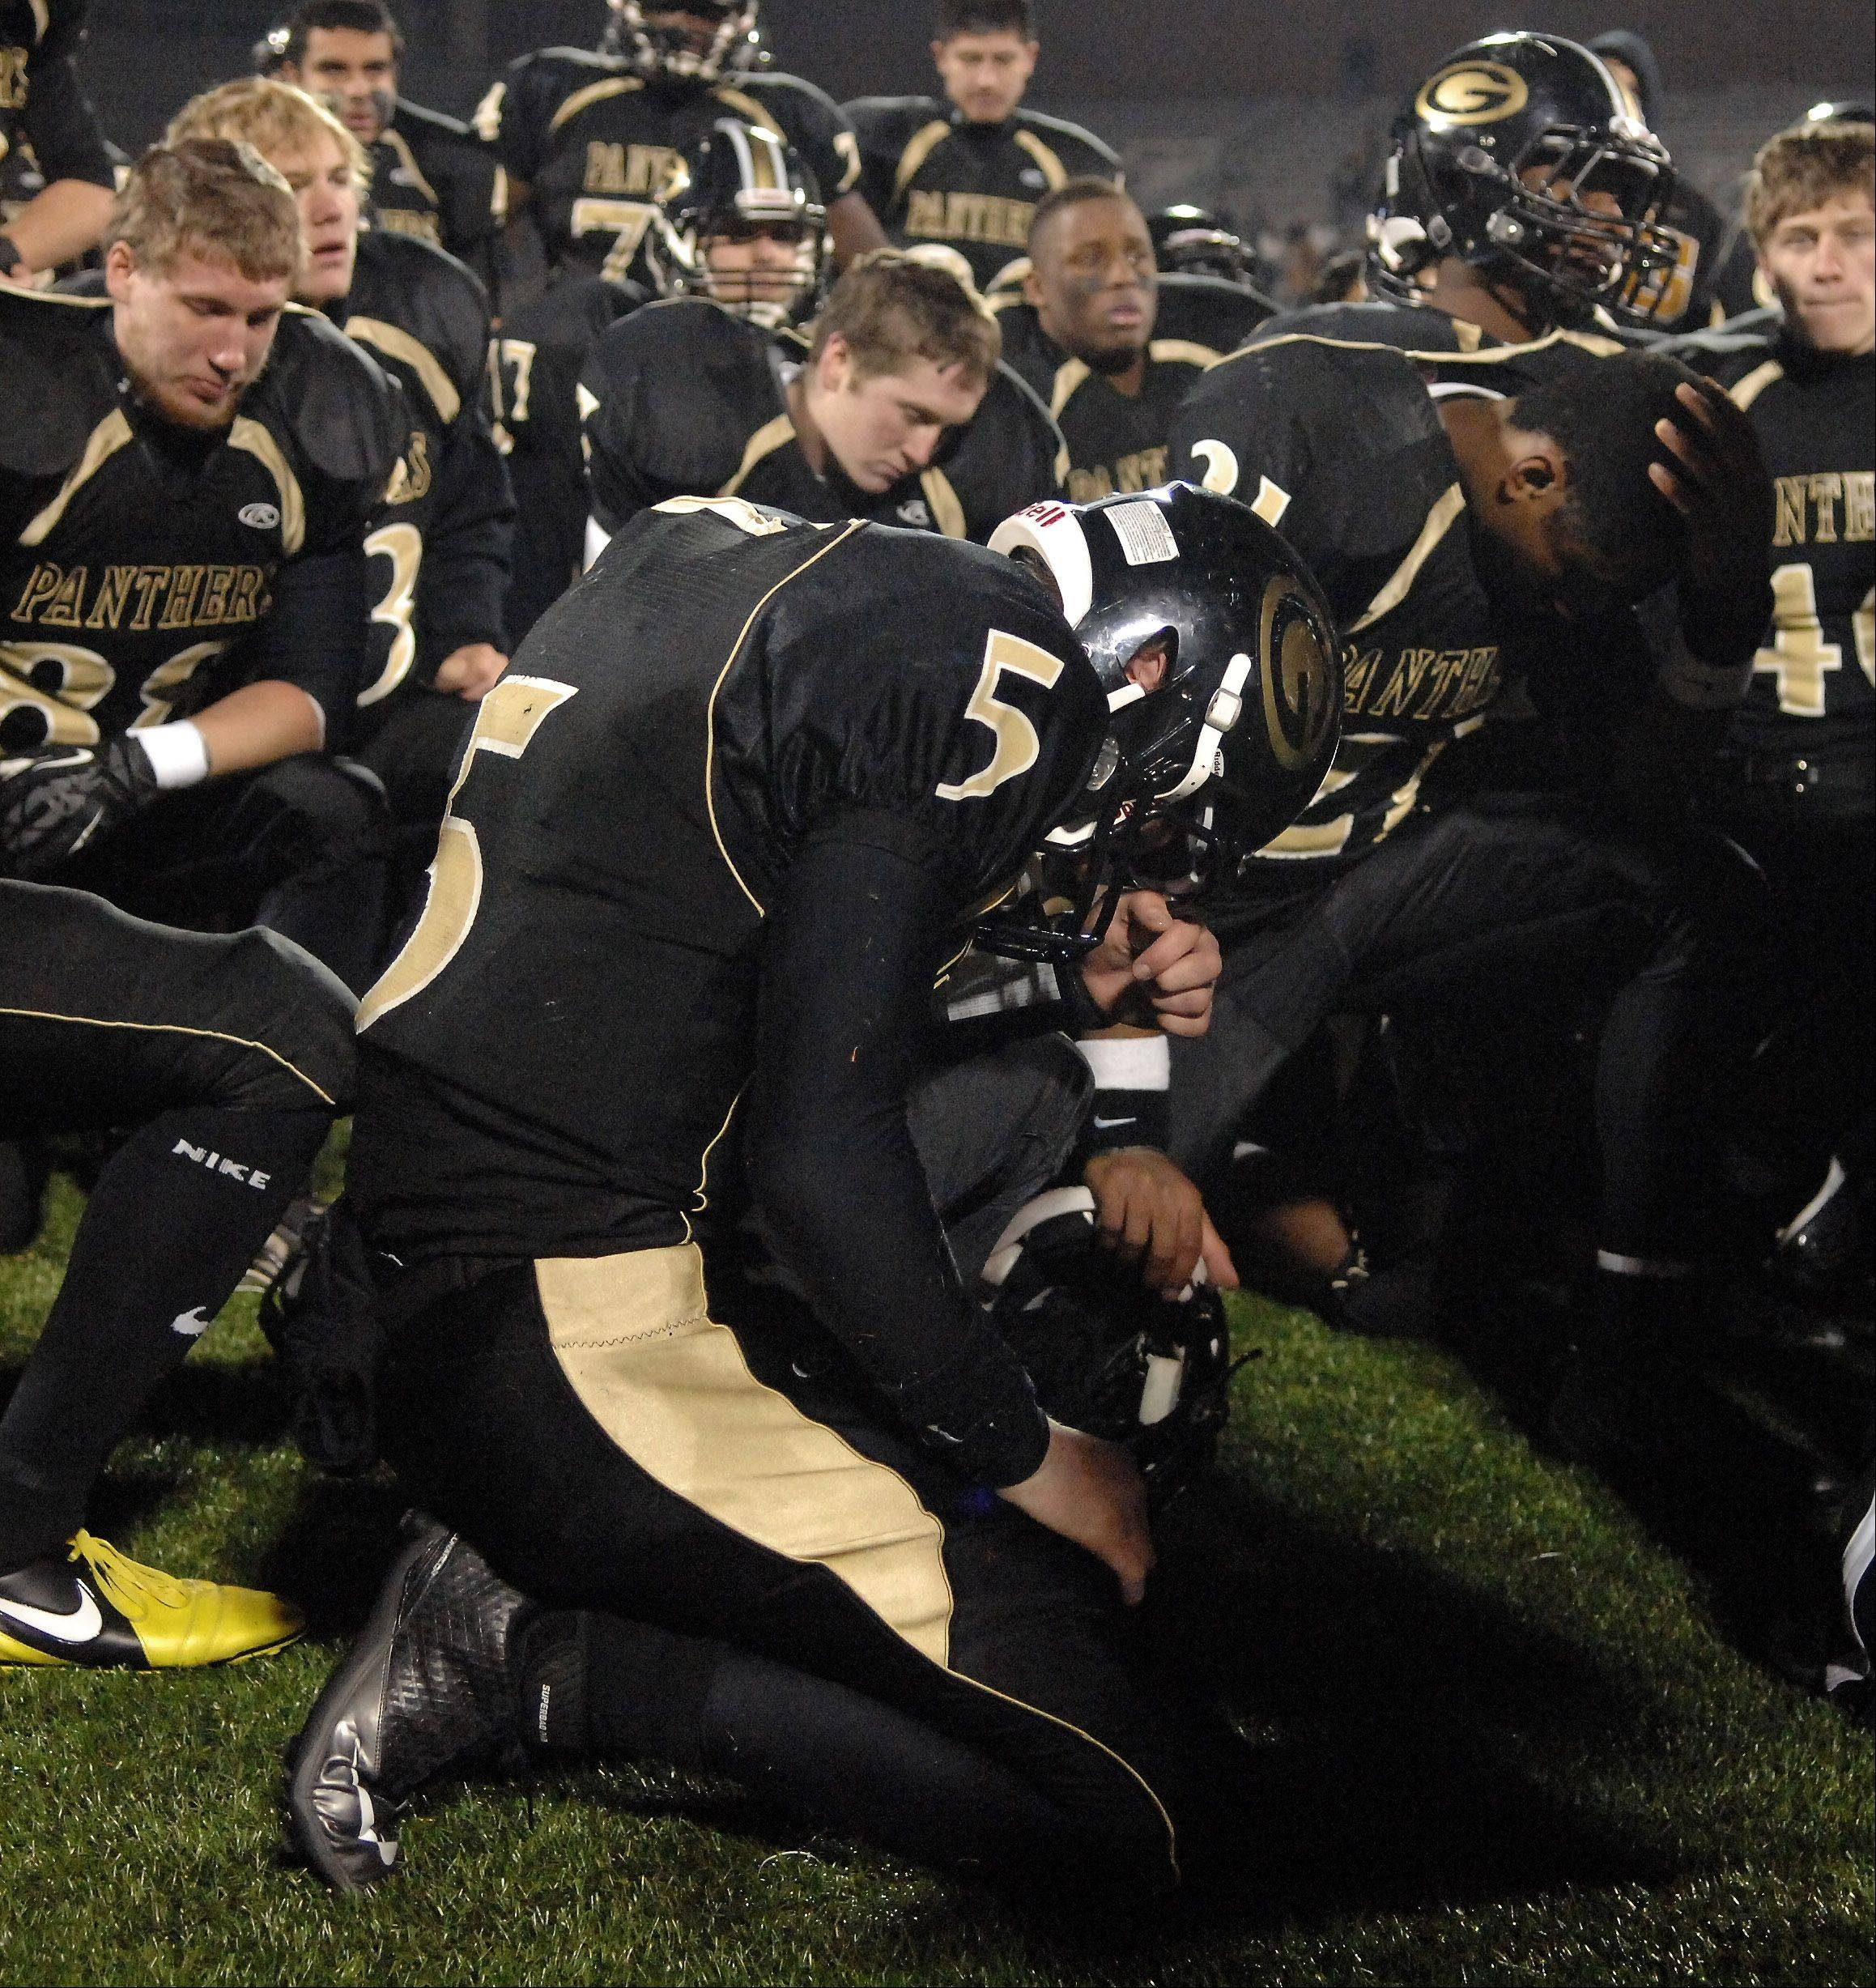 Glenbard North's Bran Murphy bows his head following the Panthers loss to Mt. Carmel during Saturday's Class 8A state title game at Memorial Stadium in Champaign.